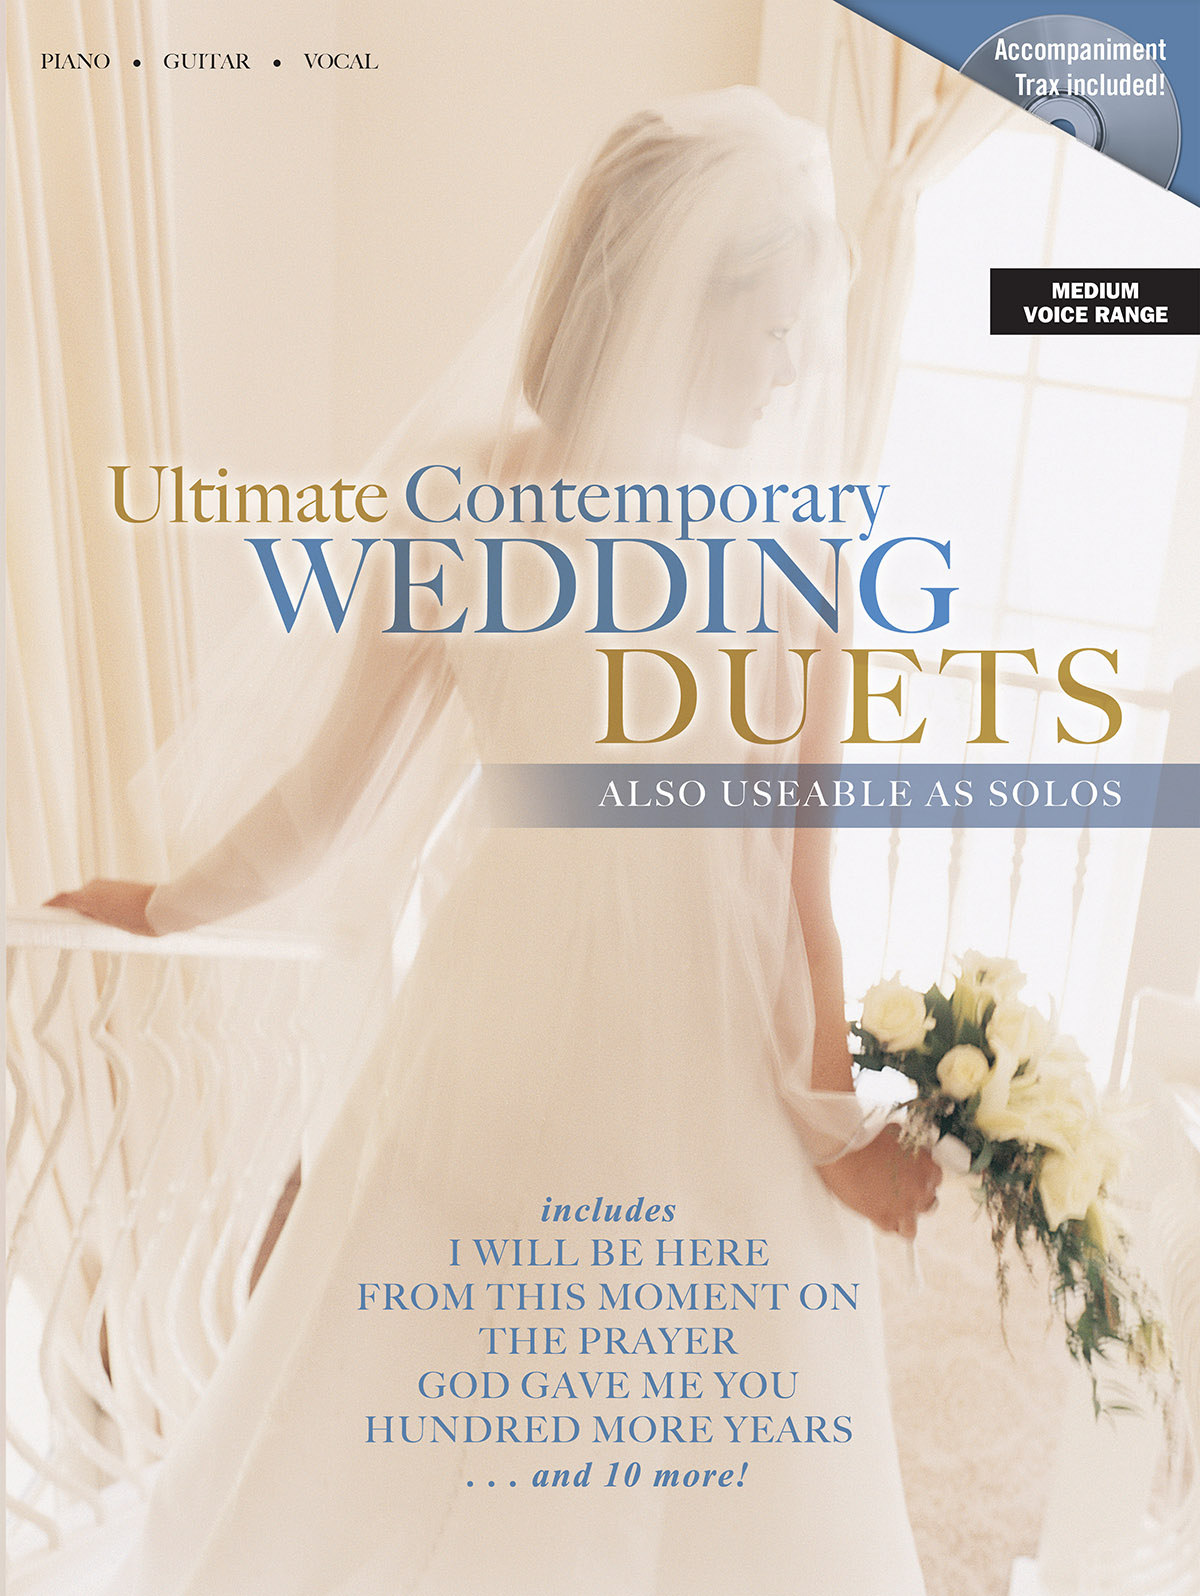 Ultimate Contemporary Wedding Duets